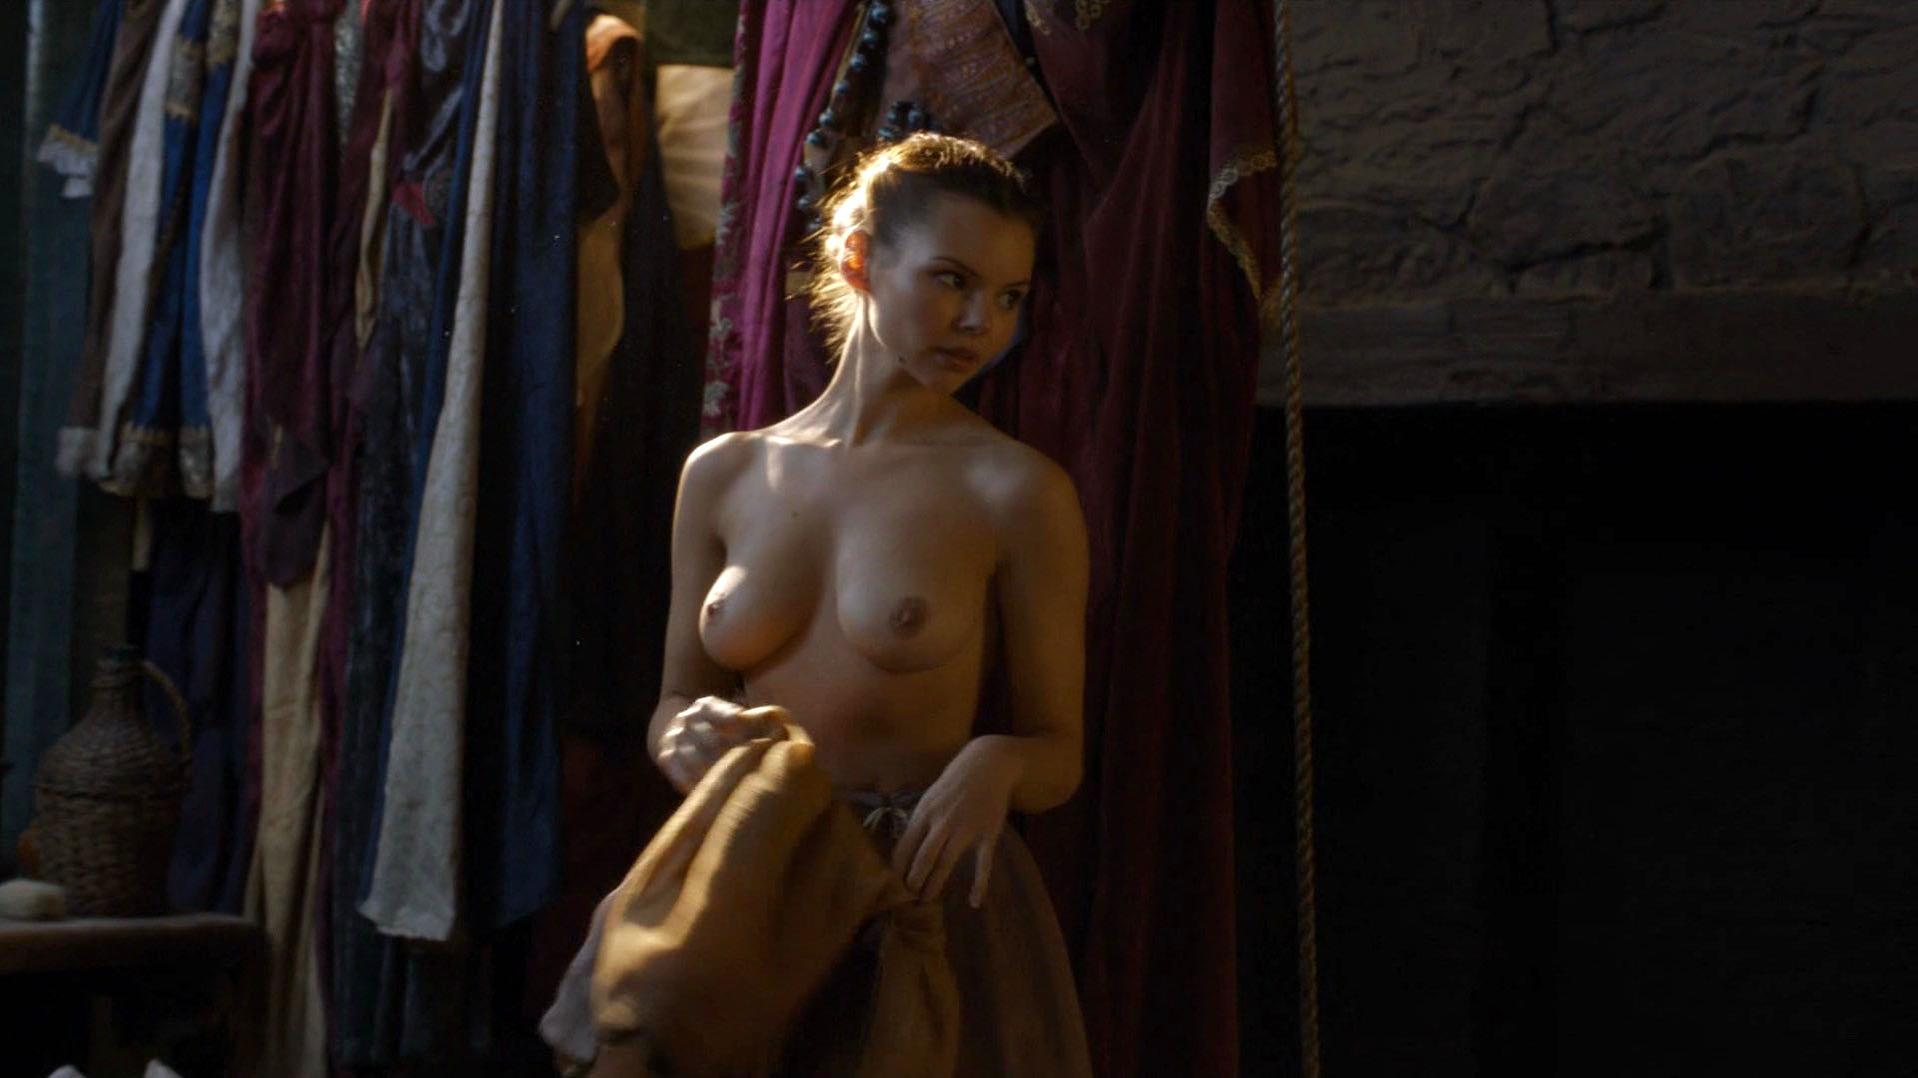 Nude Video Celebs  Eline Powell Nude - Game Of Thrones S06E05 2016-9856